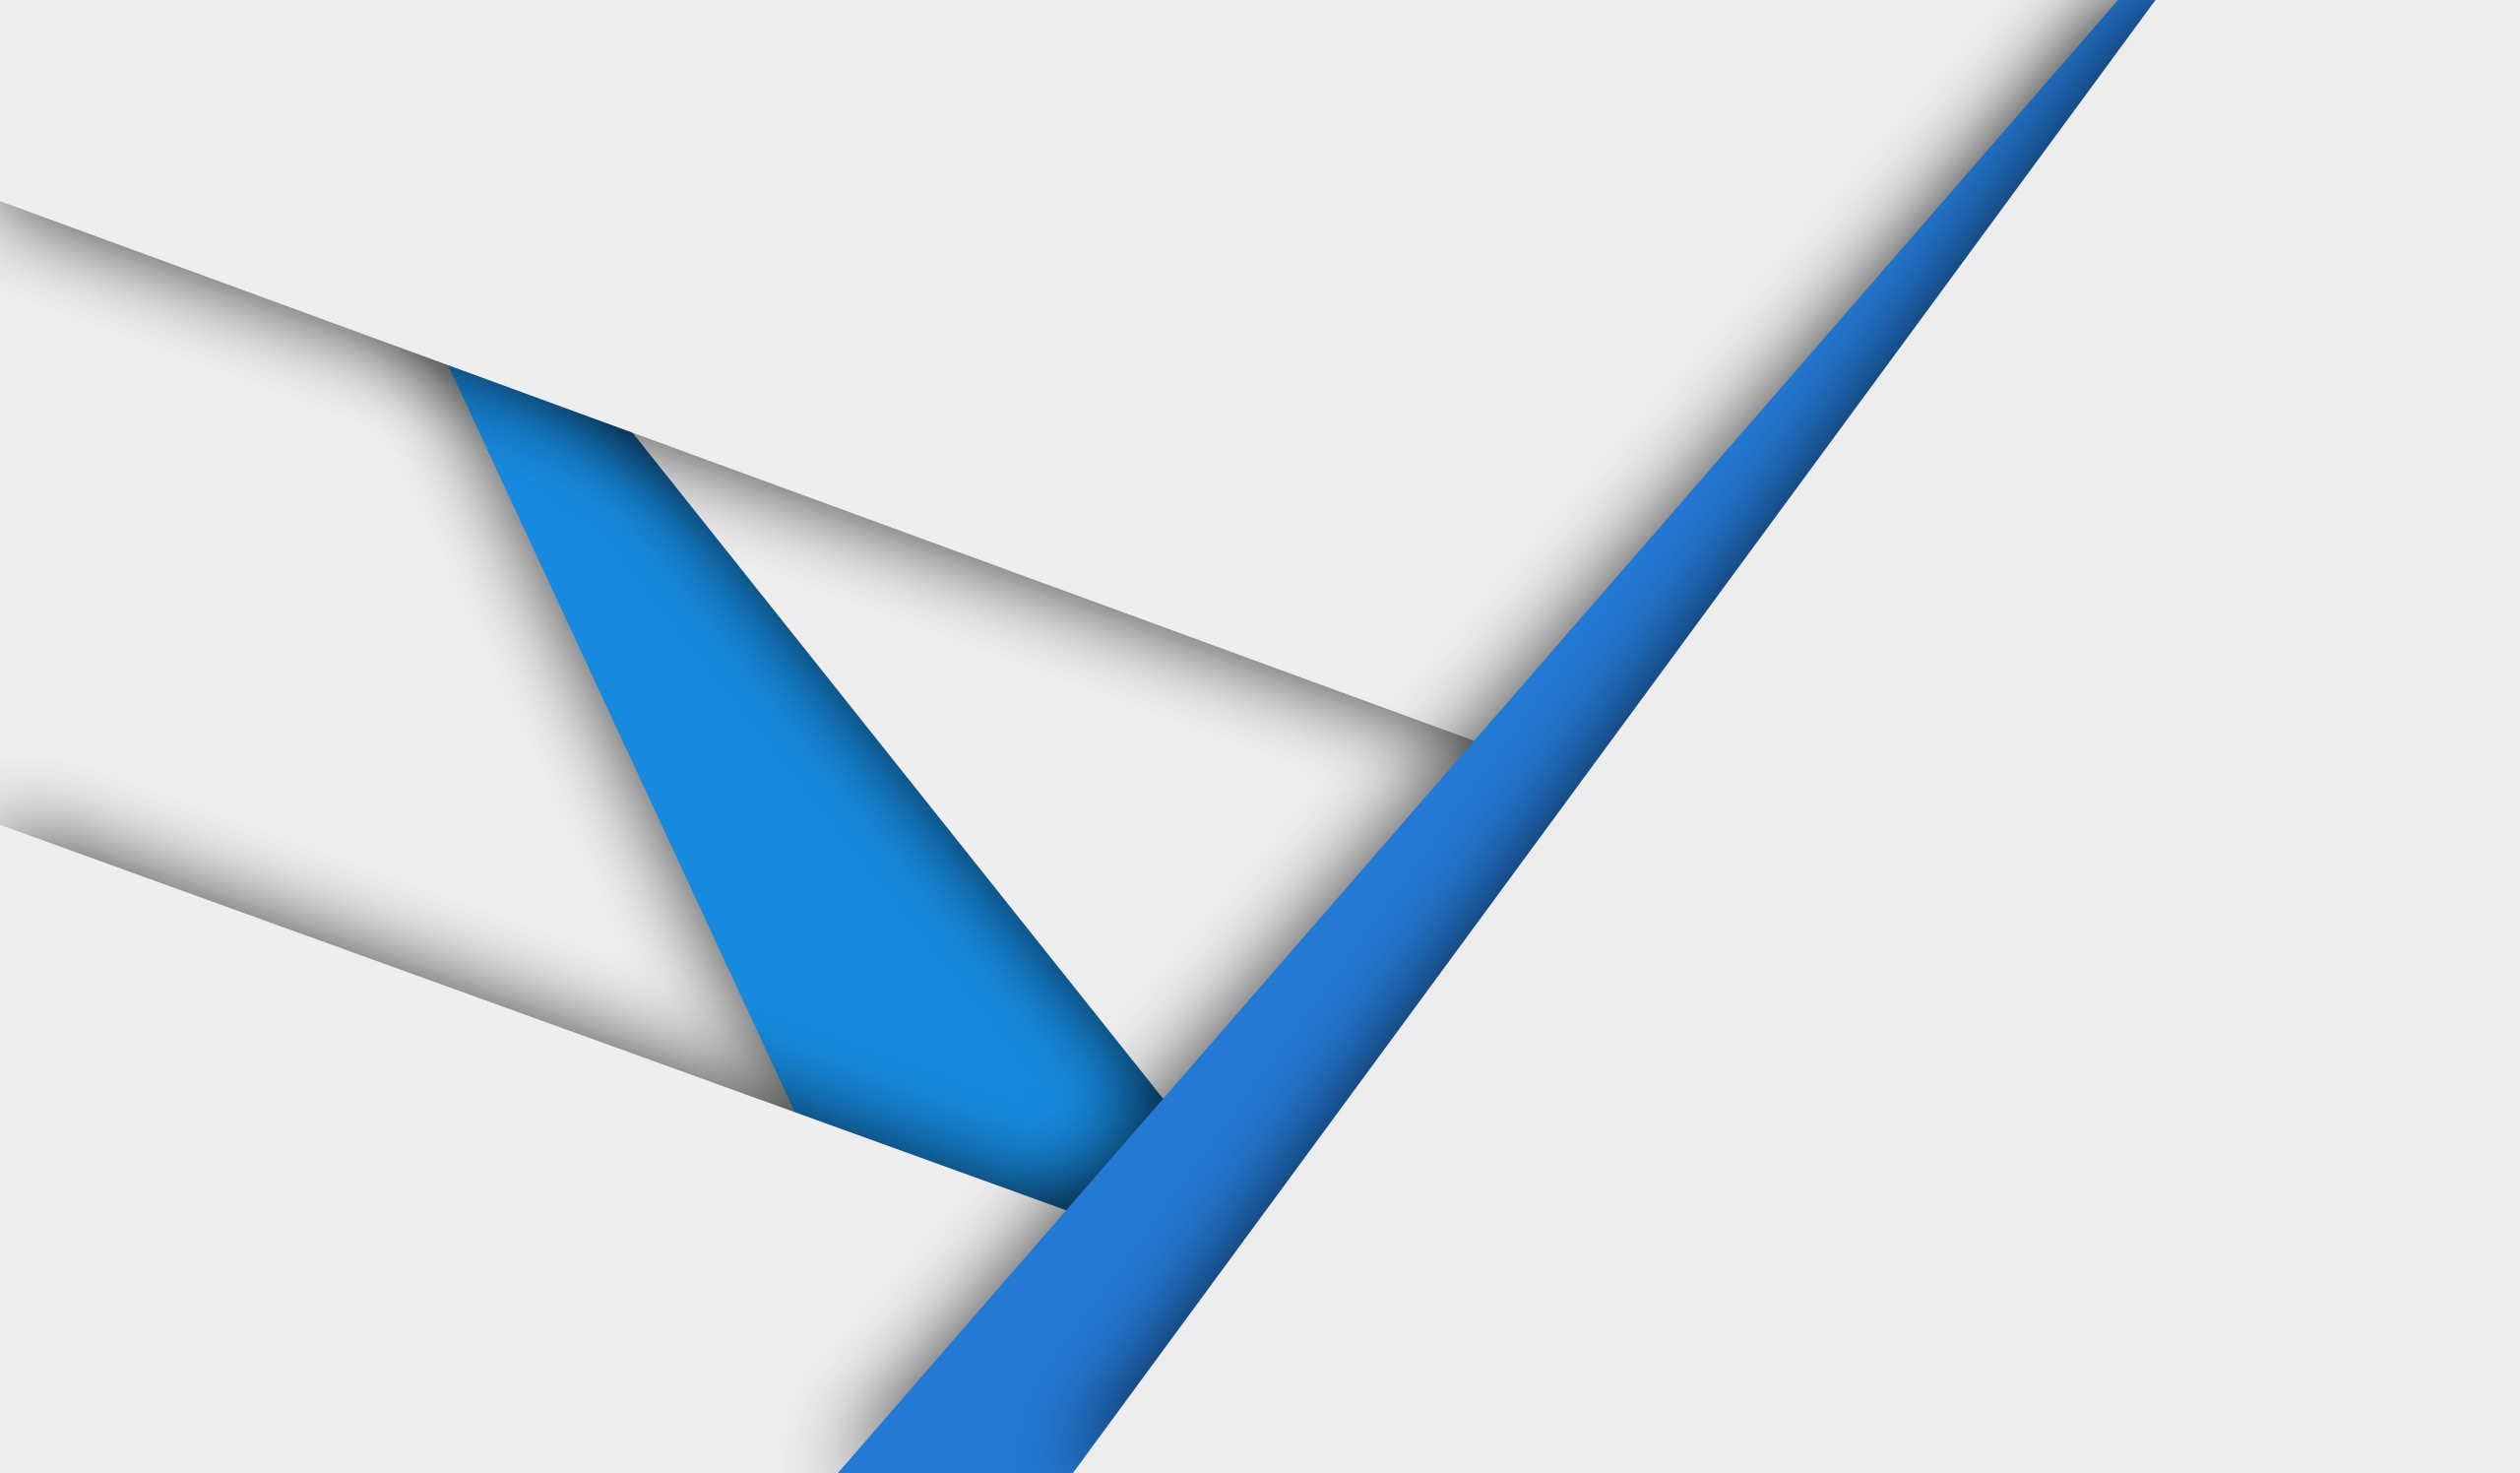 Material Design Blue And White, HD Artist, 4k Wallpapers